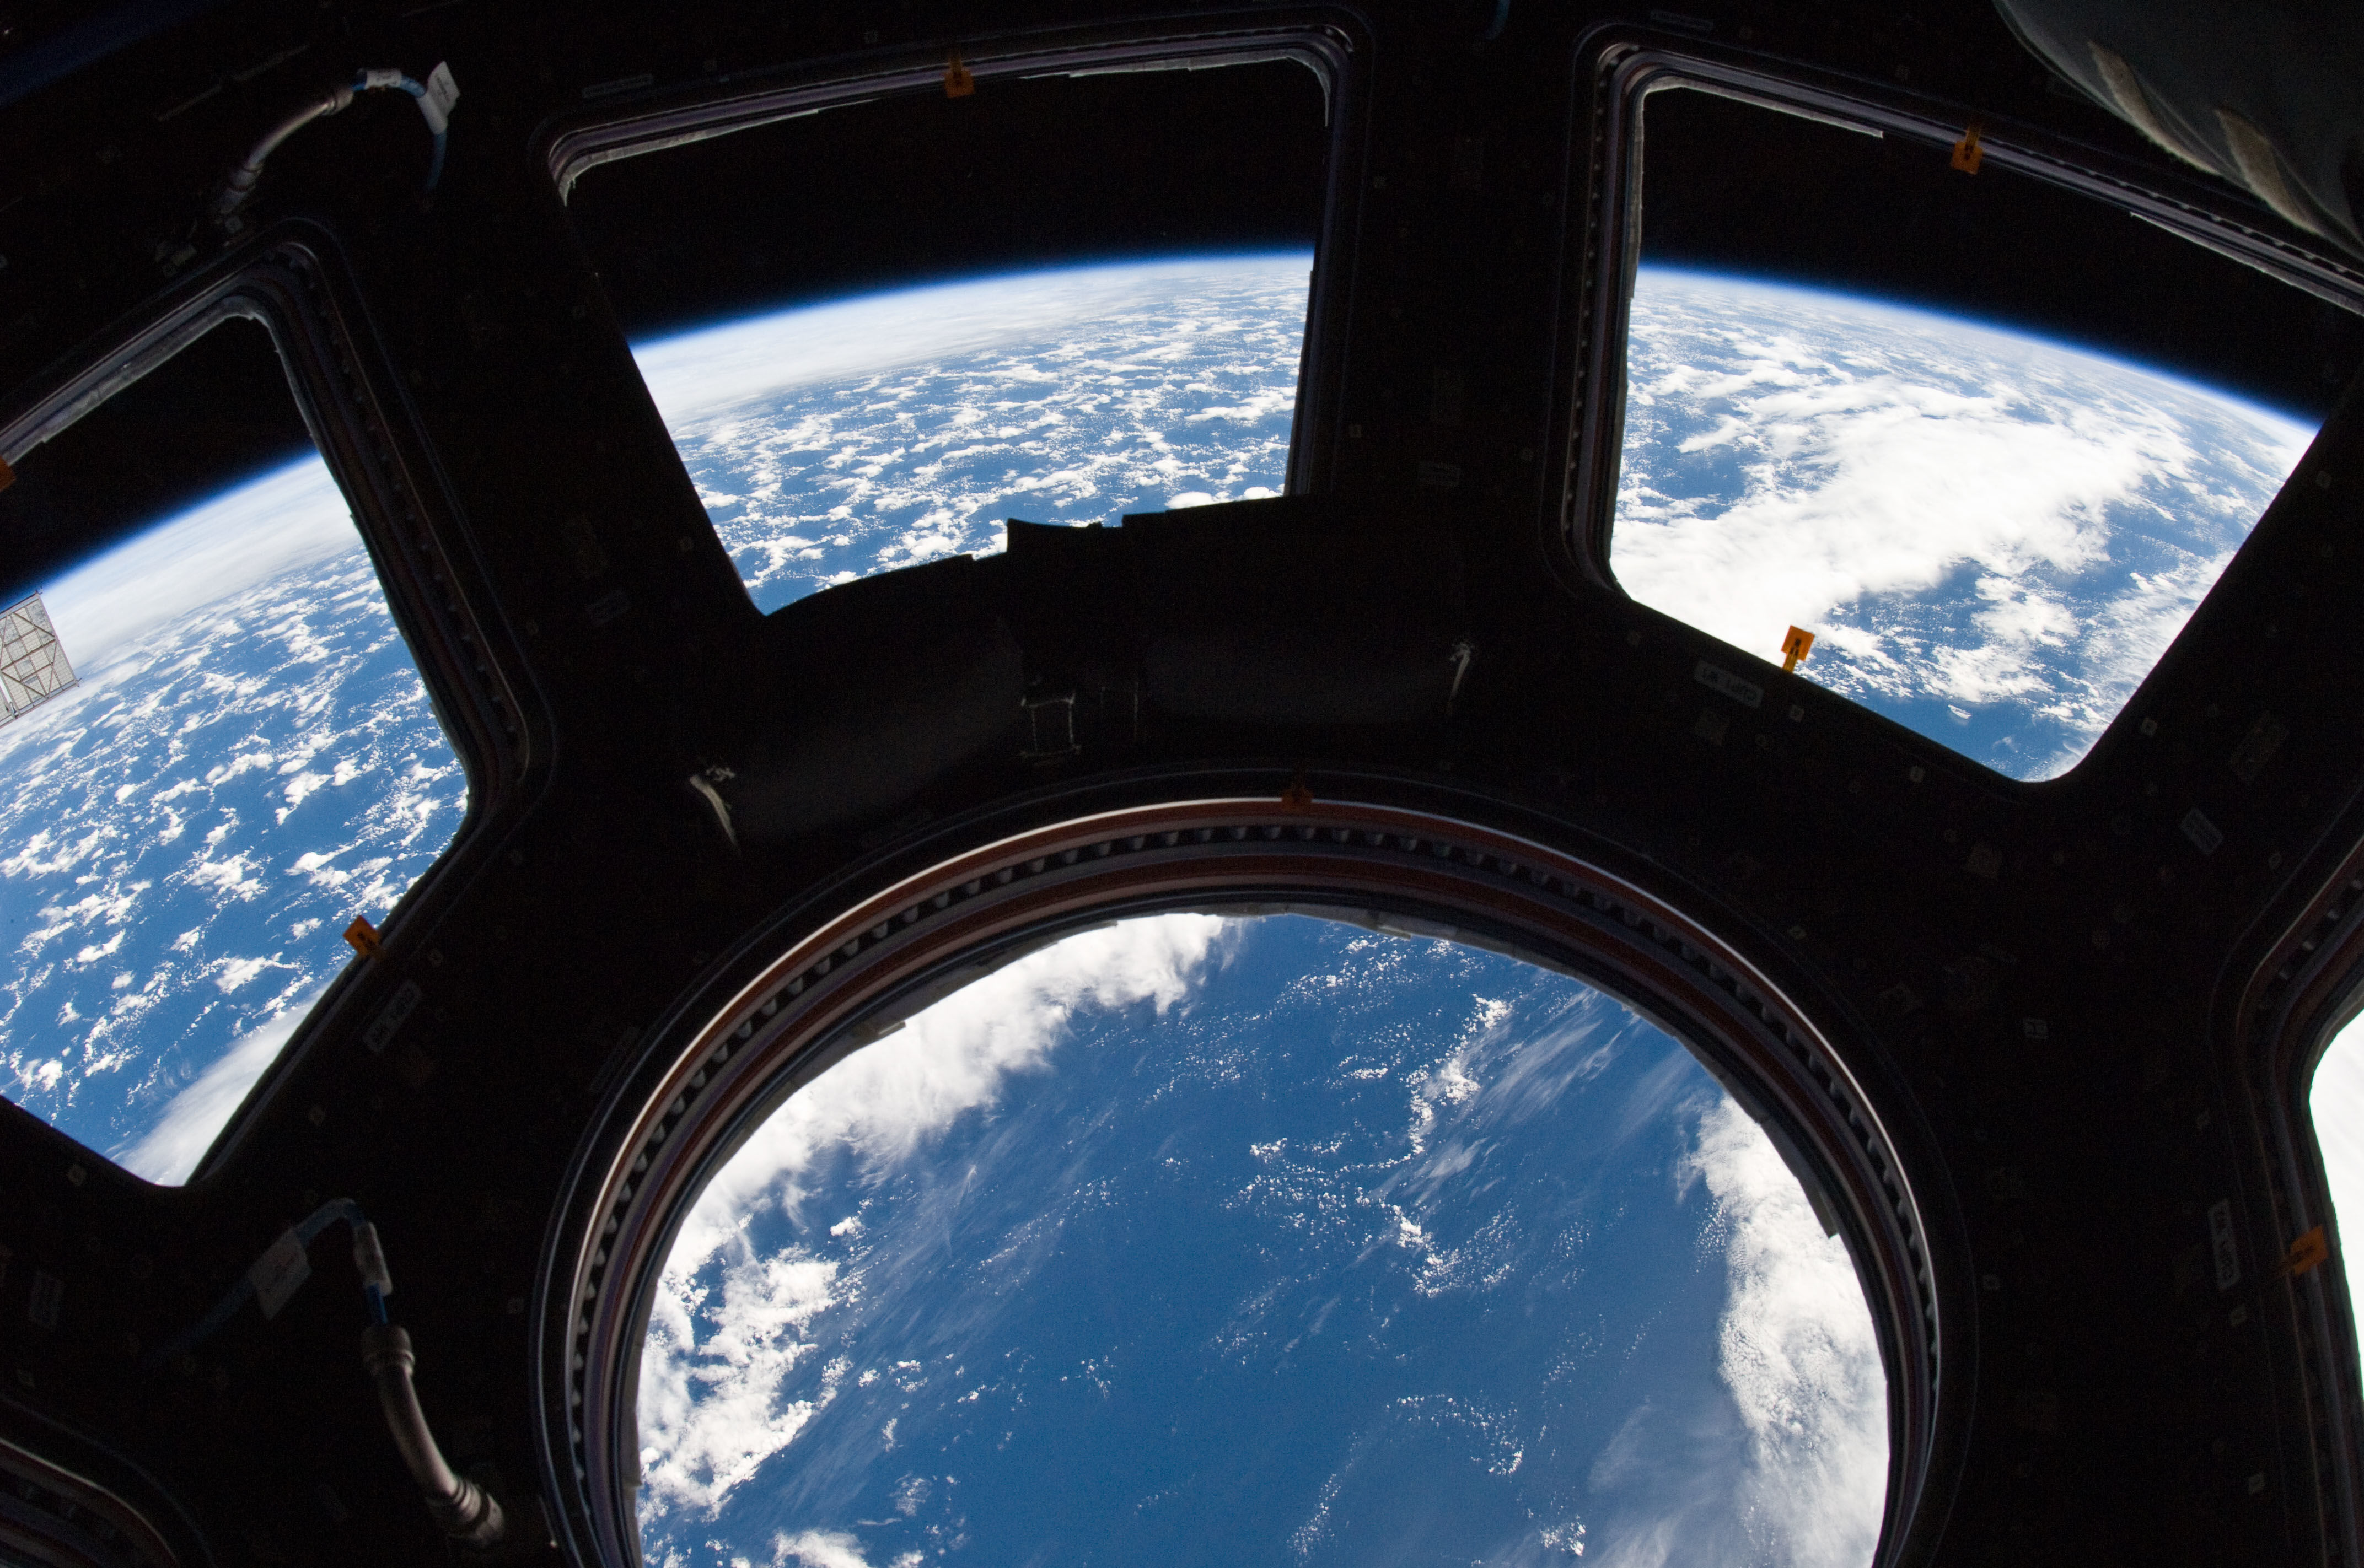 earth_and_its_horizon_seen_through_the_windows_in_cupola